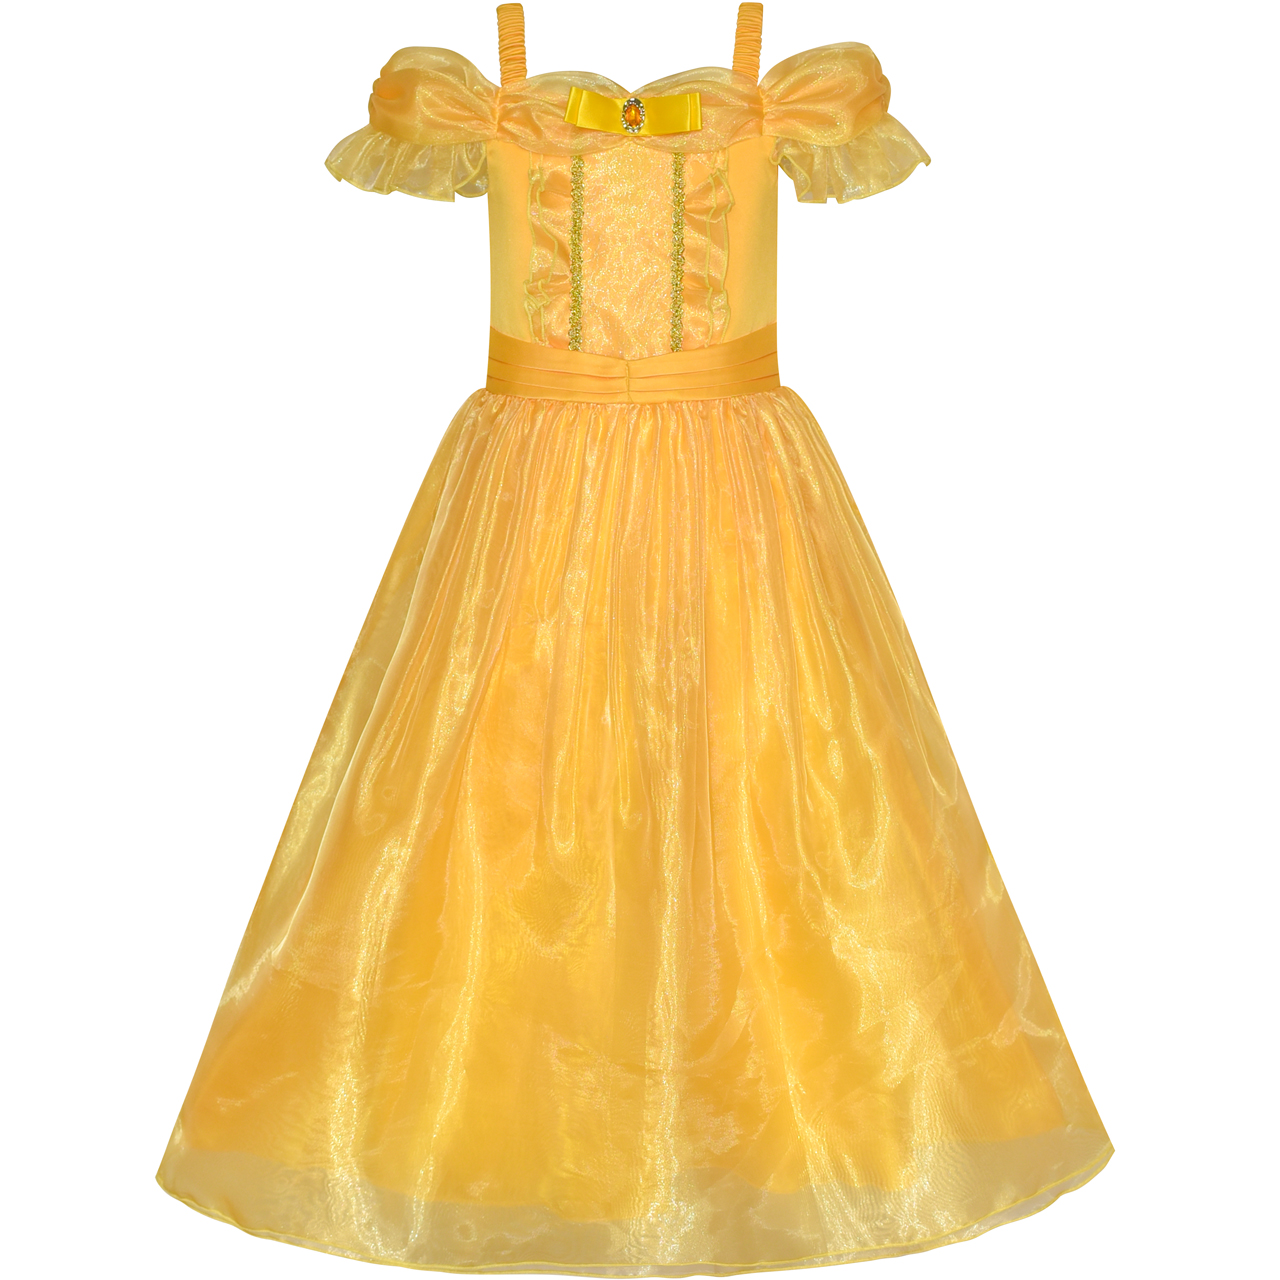 Princess Belle Costume Dress Up Girls Dress Yellow 2018 Summer Wedding Party Dresses Kids Clothes Size 4-12